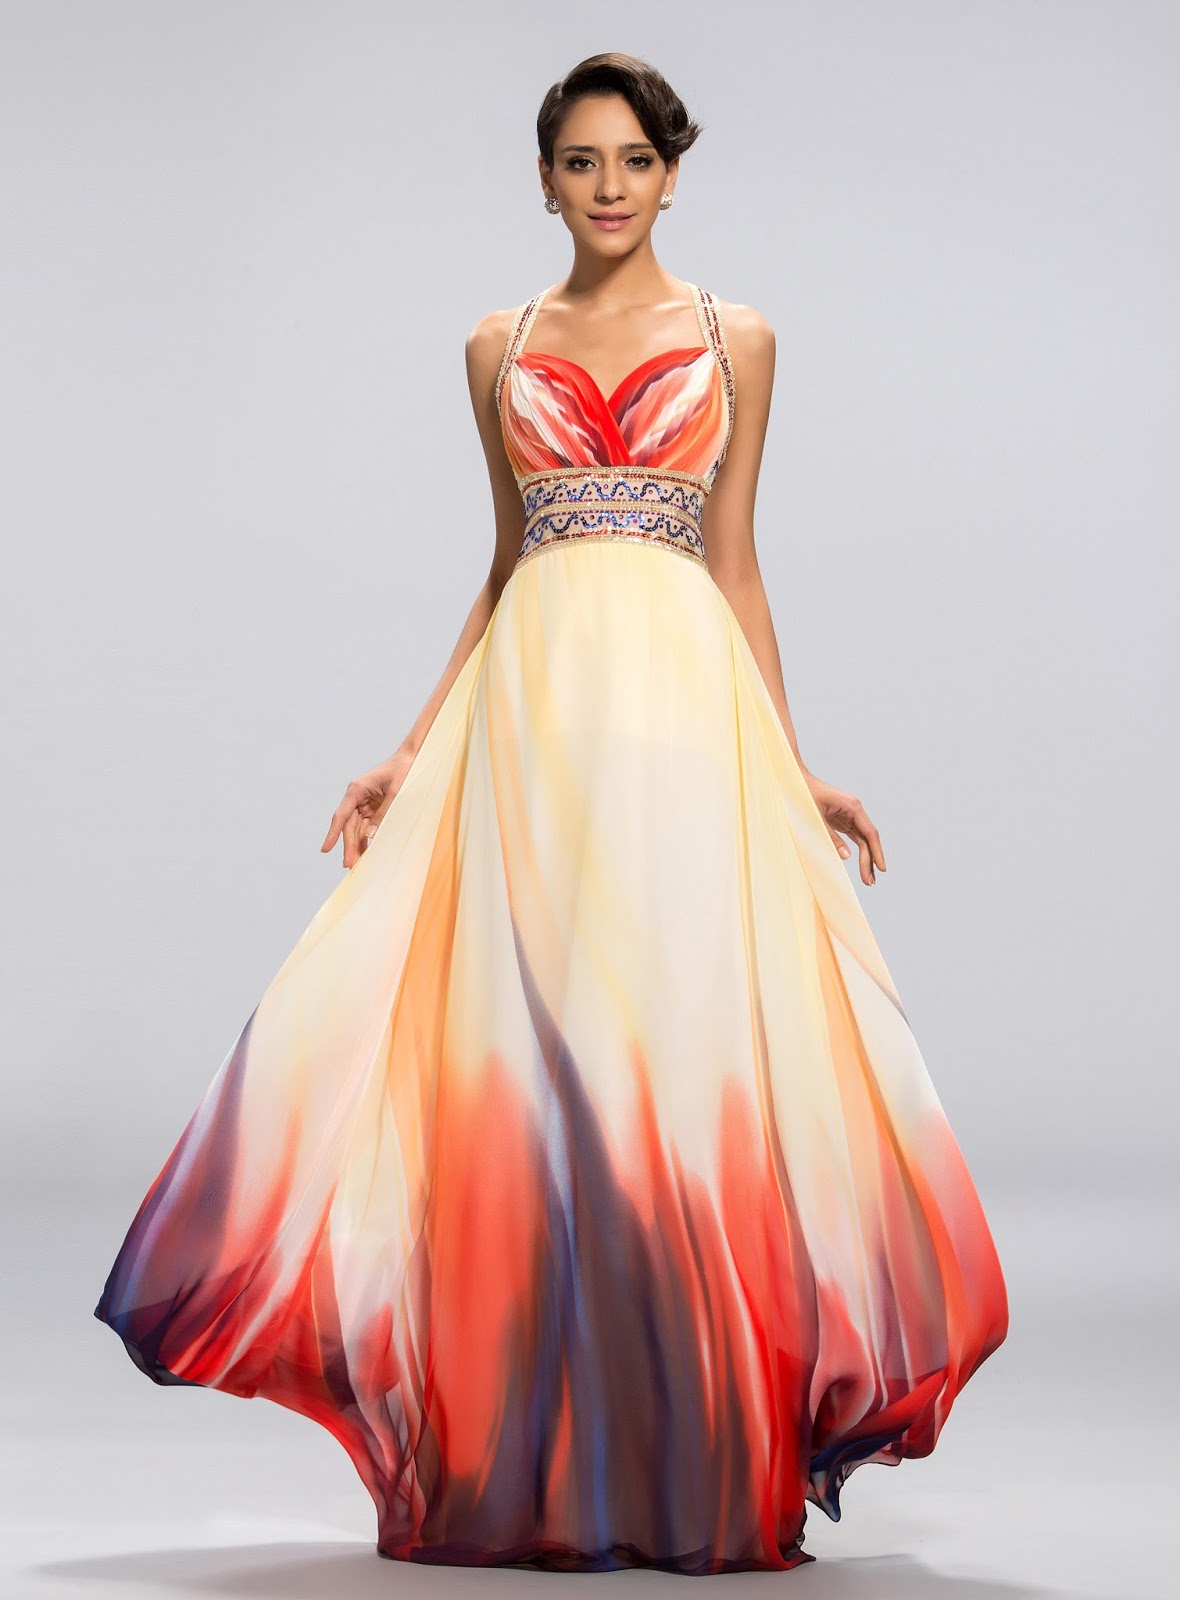 98563f8f70 prom dress choosing tips